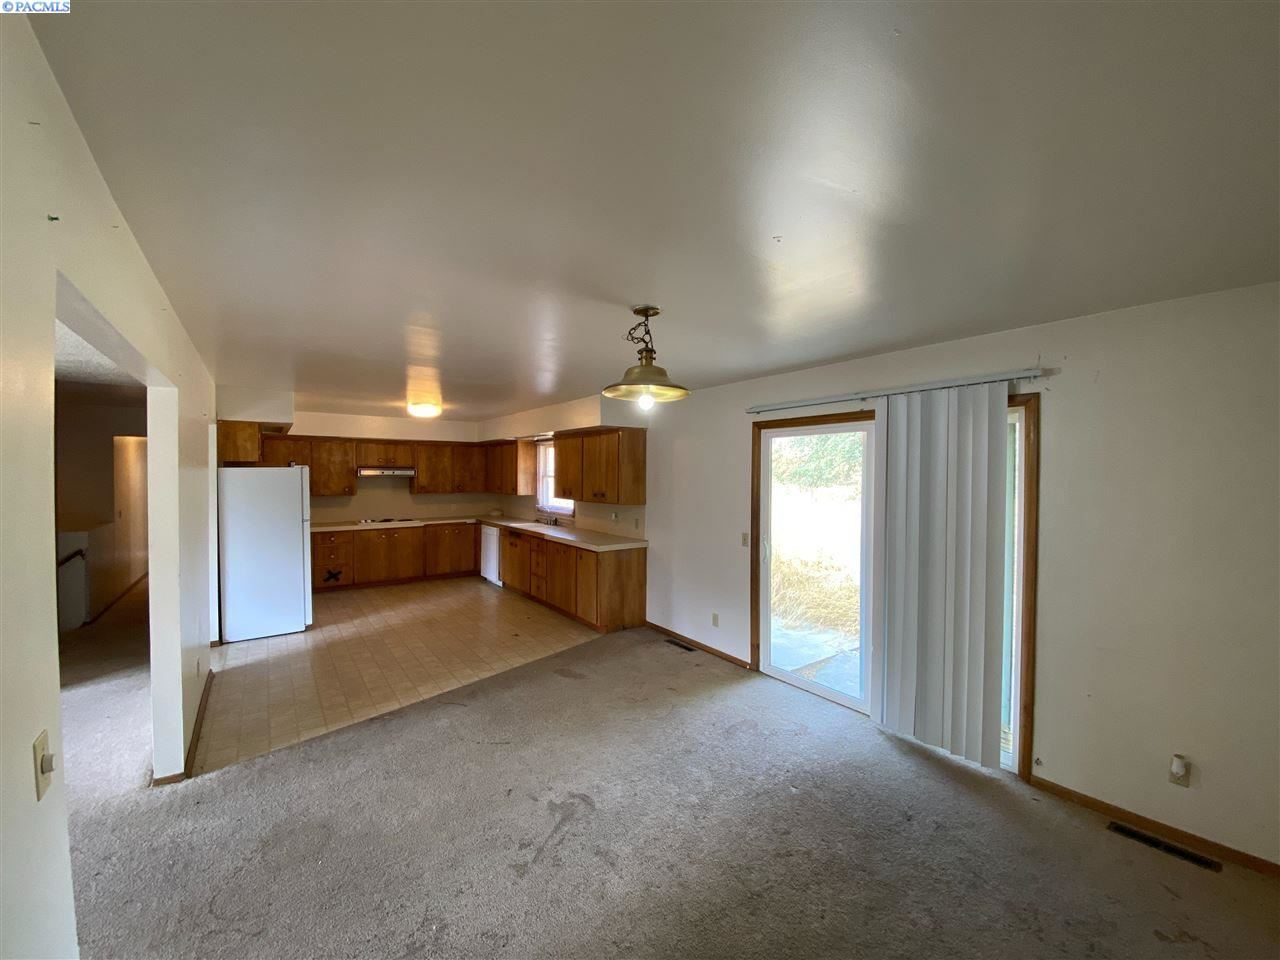 Photo of 300 SW Shirley St., Pullman, WA 99163 (MLS # 249431)